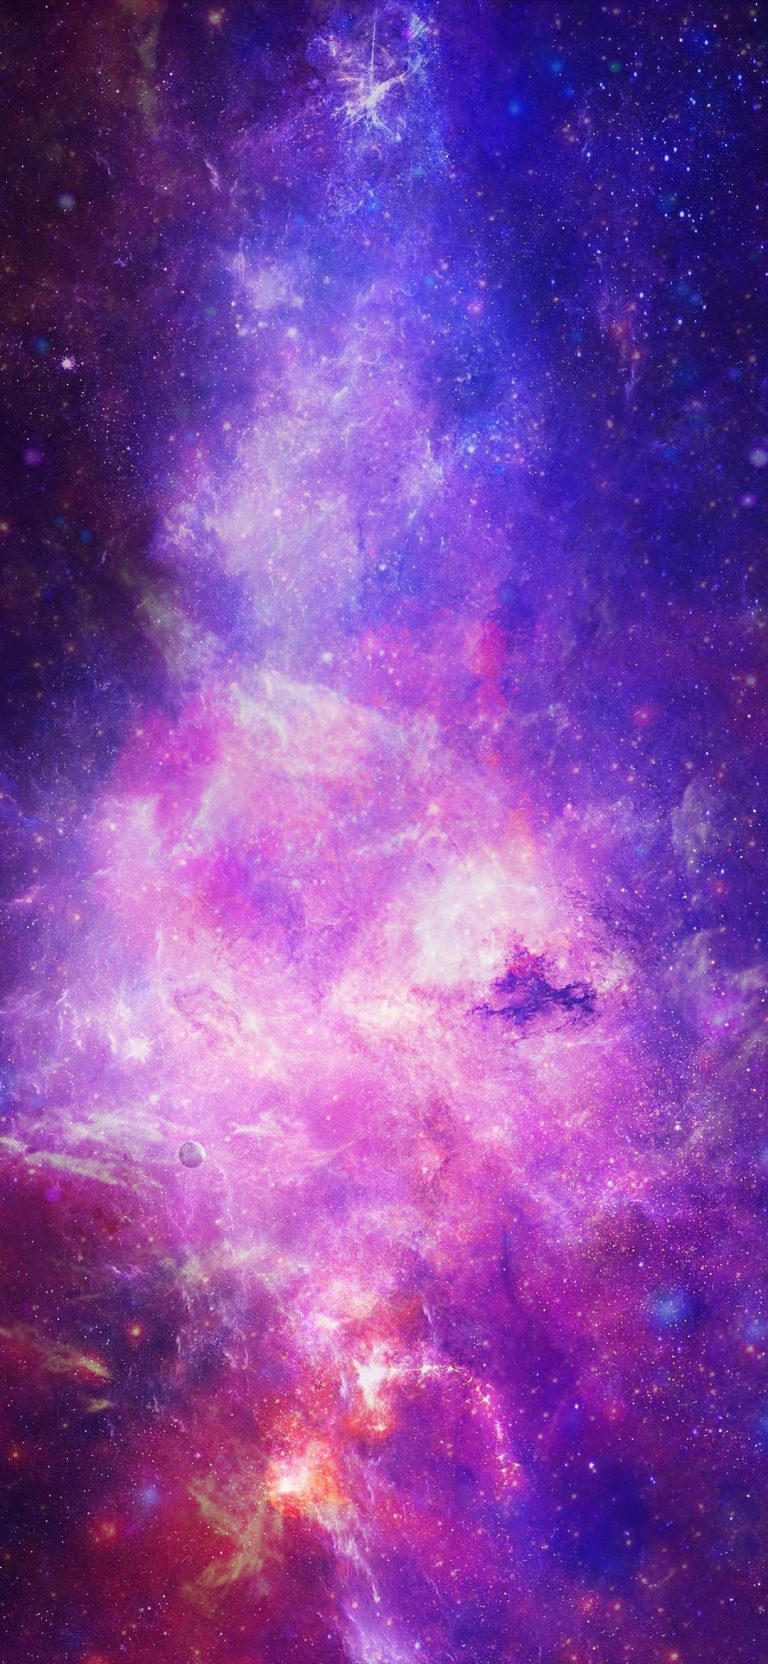 Space Phone Wallpaper 198 1080x2340 768x1664